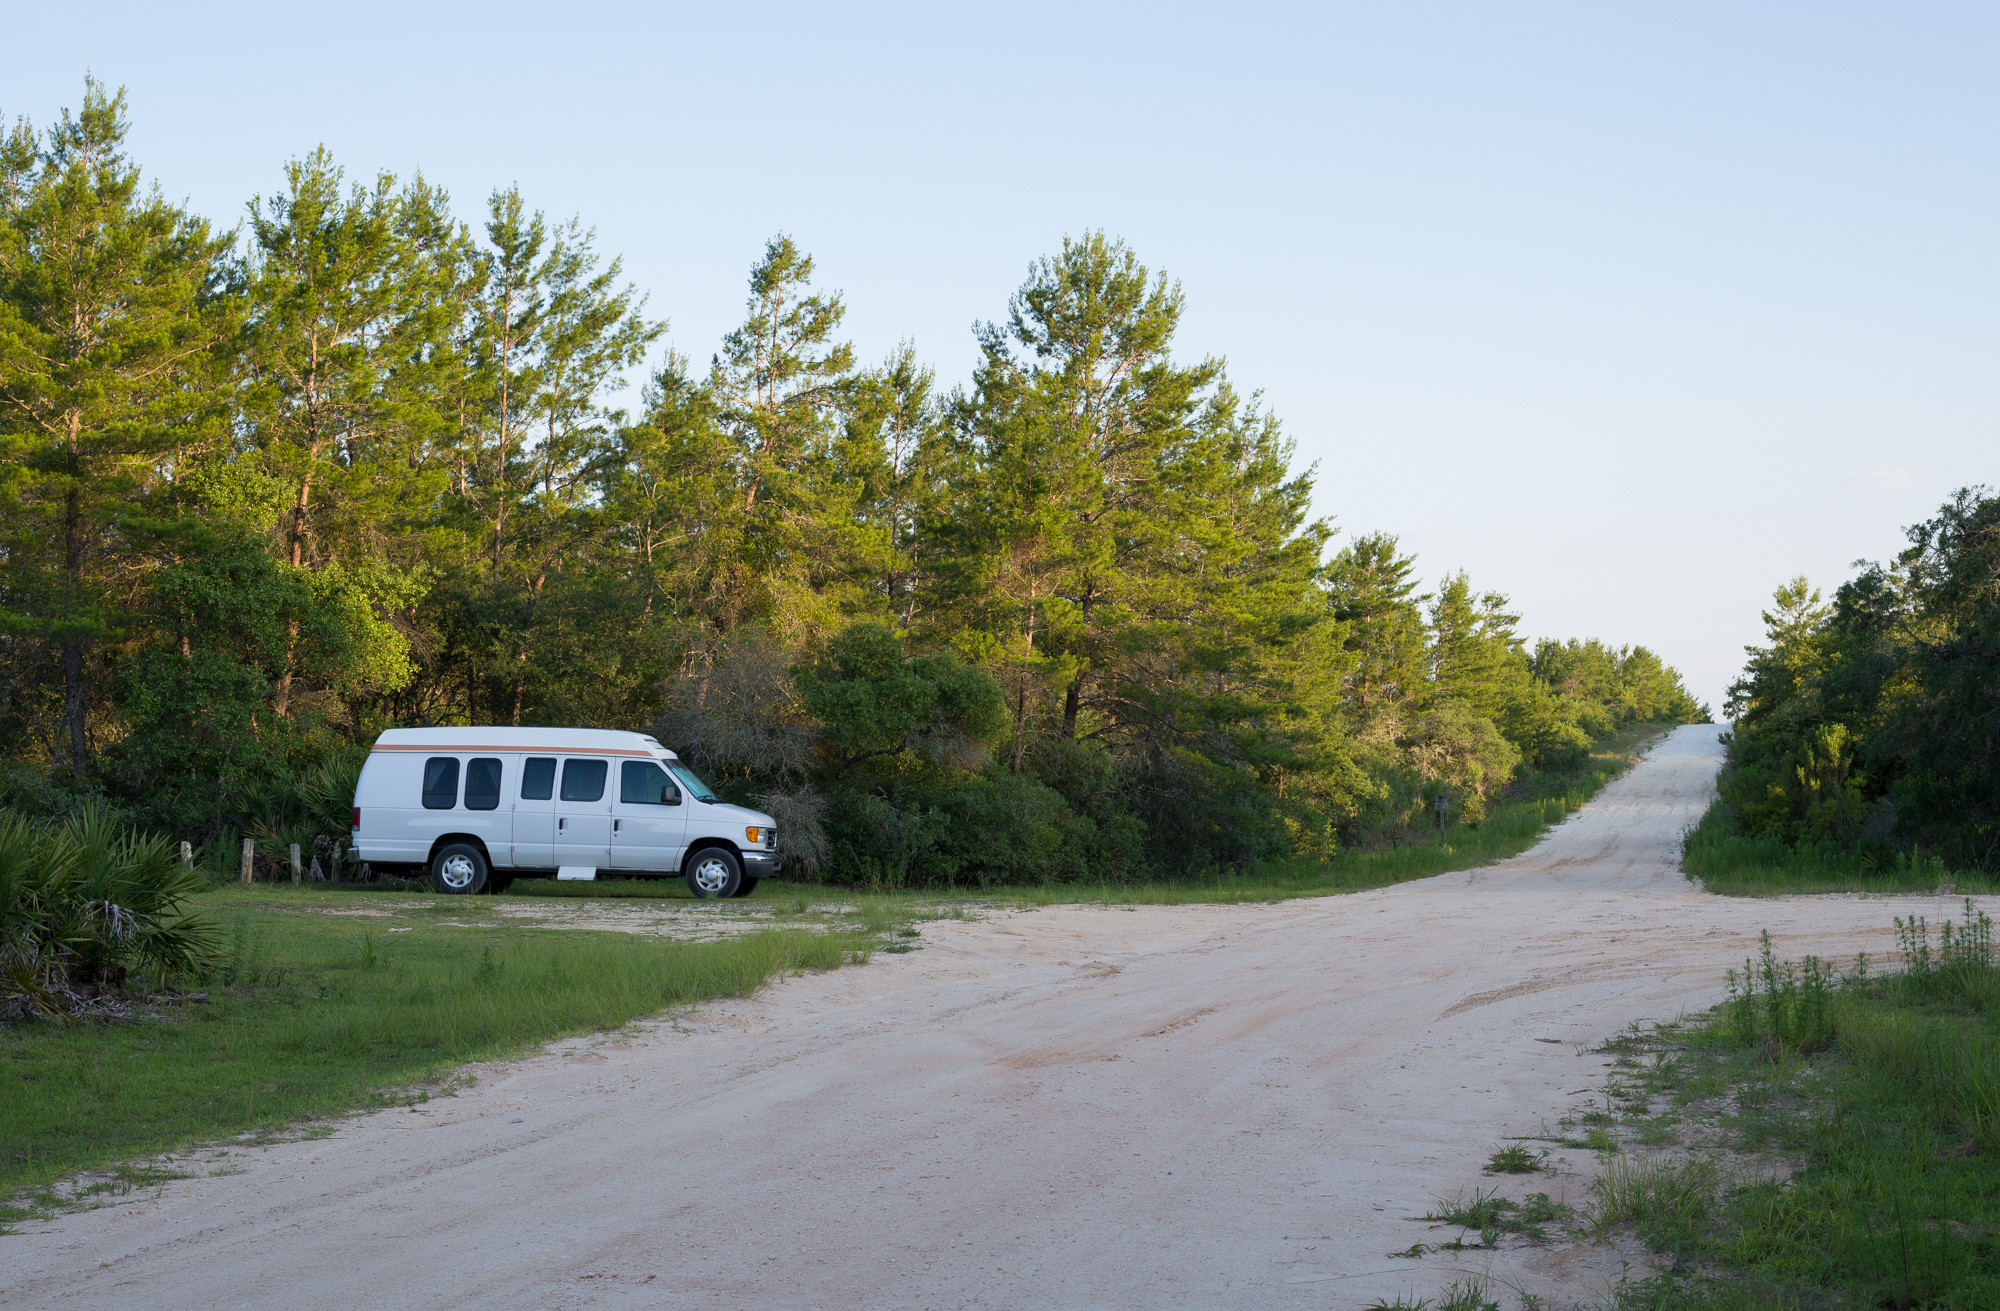 Howl parked at the Fire Trail on Forest Road 33 after arriving at the Juniper Prairie Wilderness Friday evening